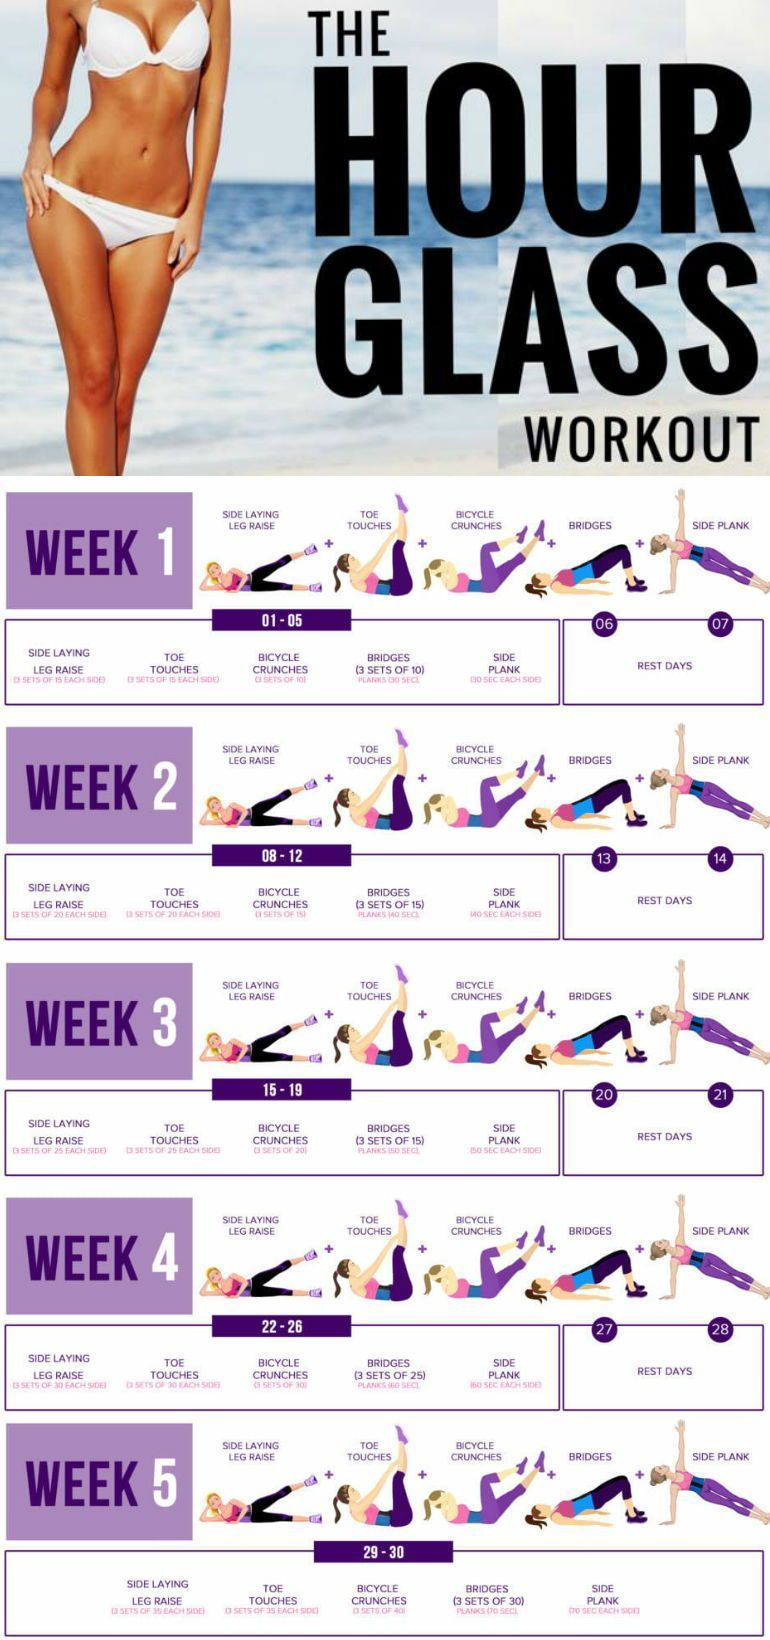 5 Moves To Shape Your Body Into A Beautiful Hour Glass Figure - GymGuider.com